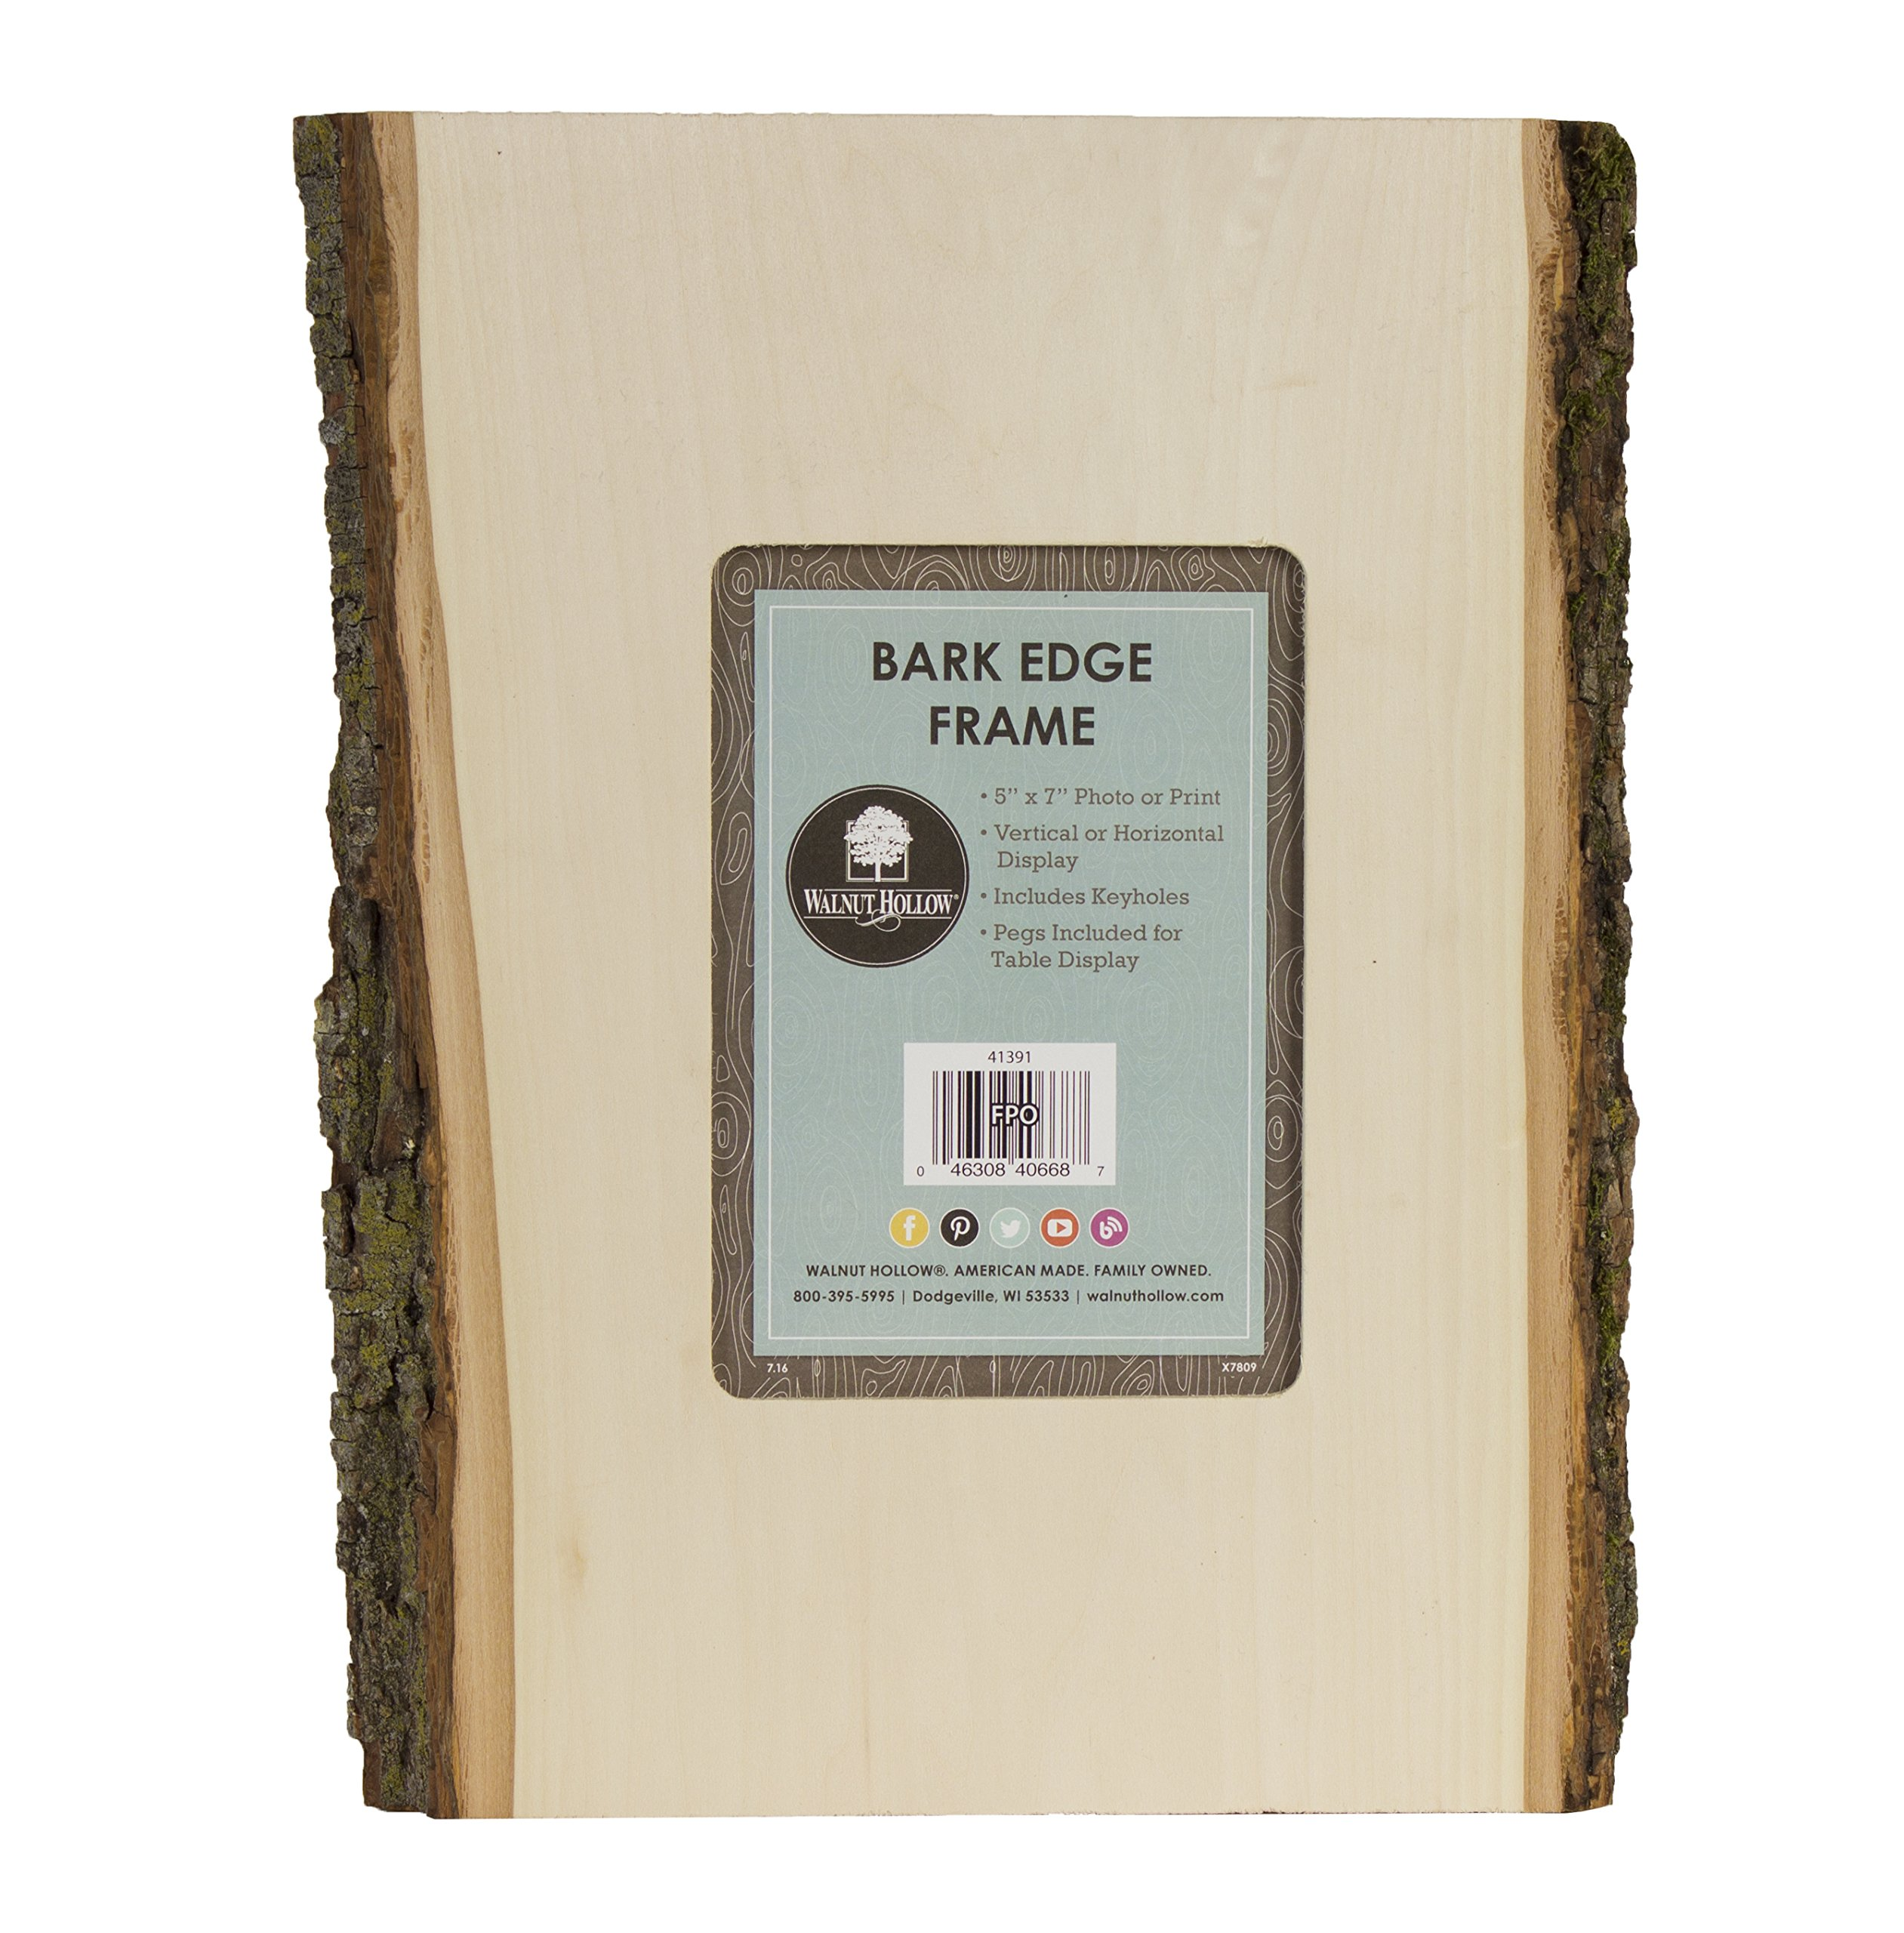 Walnut Hollow 5x7 Photo Picture Frame with Bark Edges